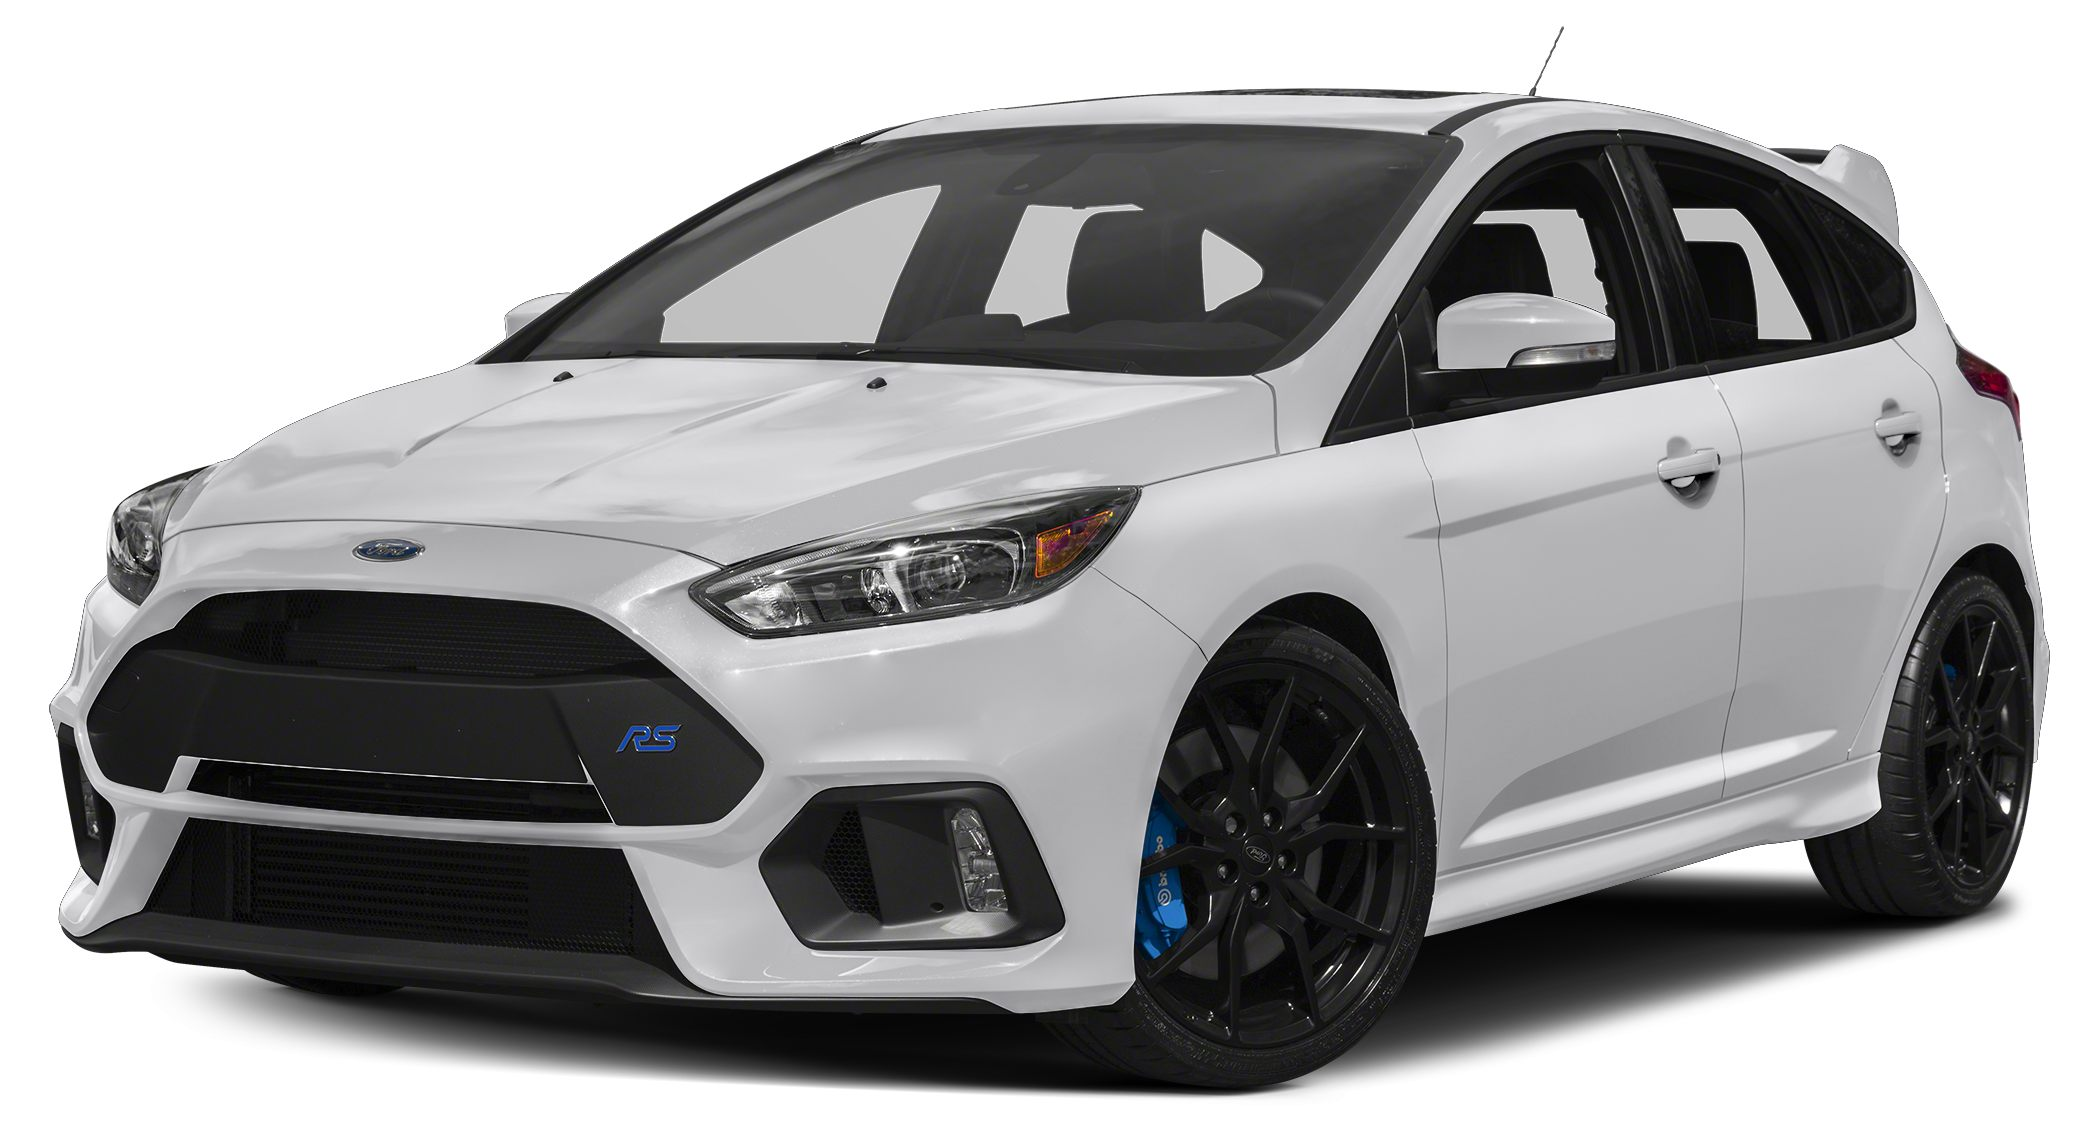 Buy A Ford Focus 2016 Ford Focus Rs For Sale 153 Used Cars From 15 423